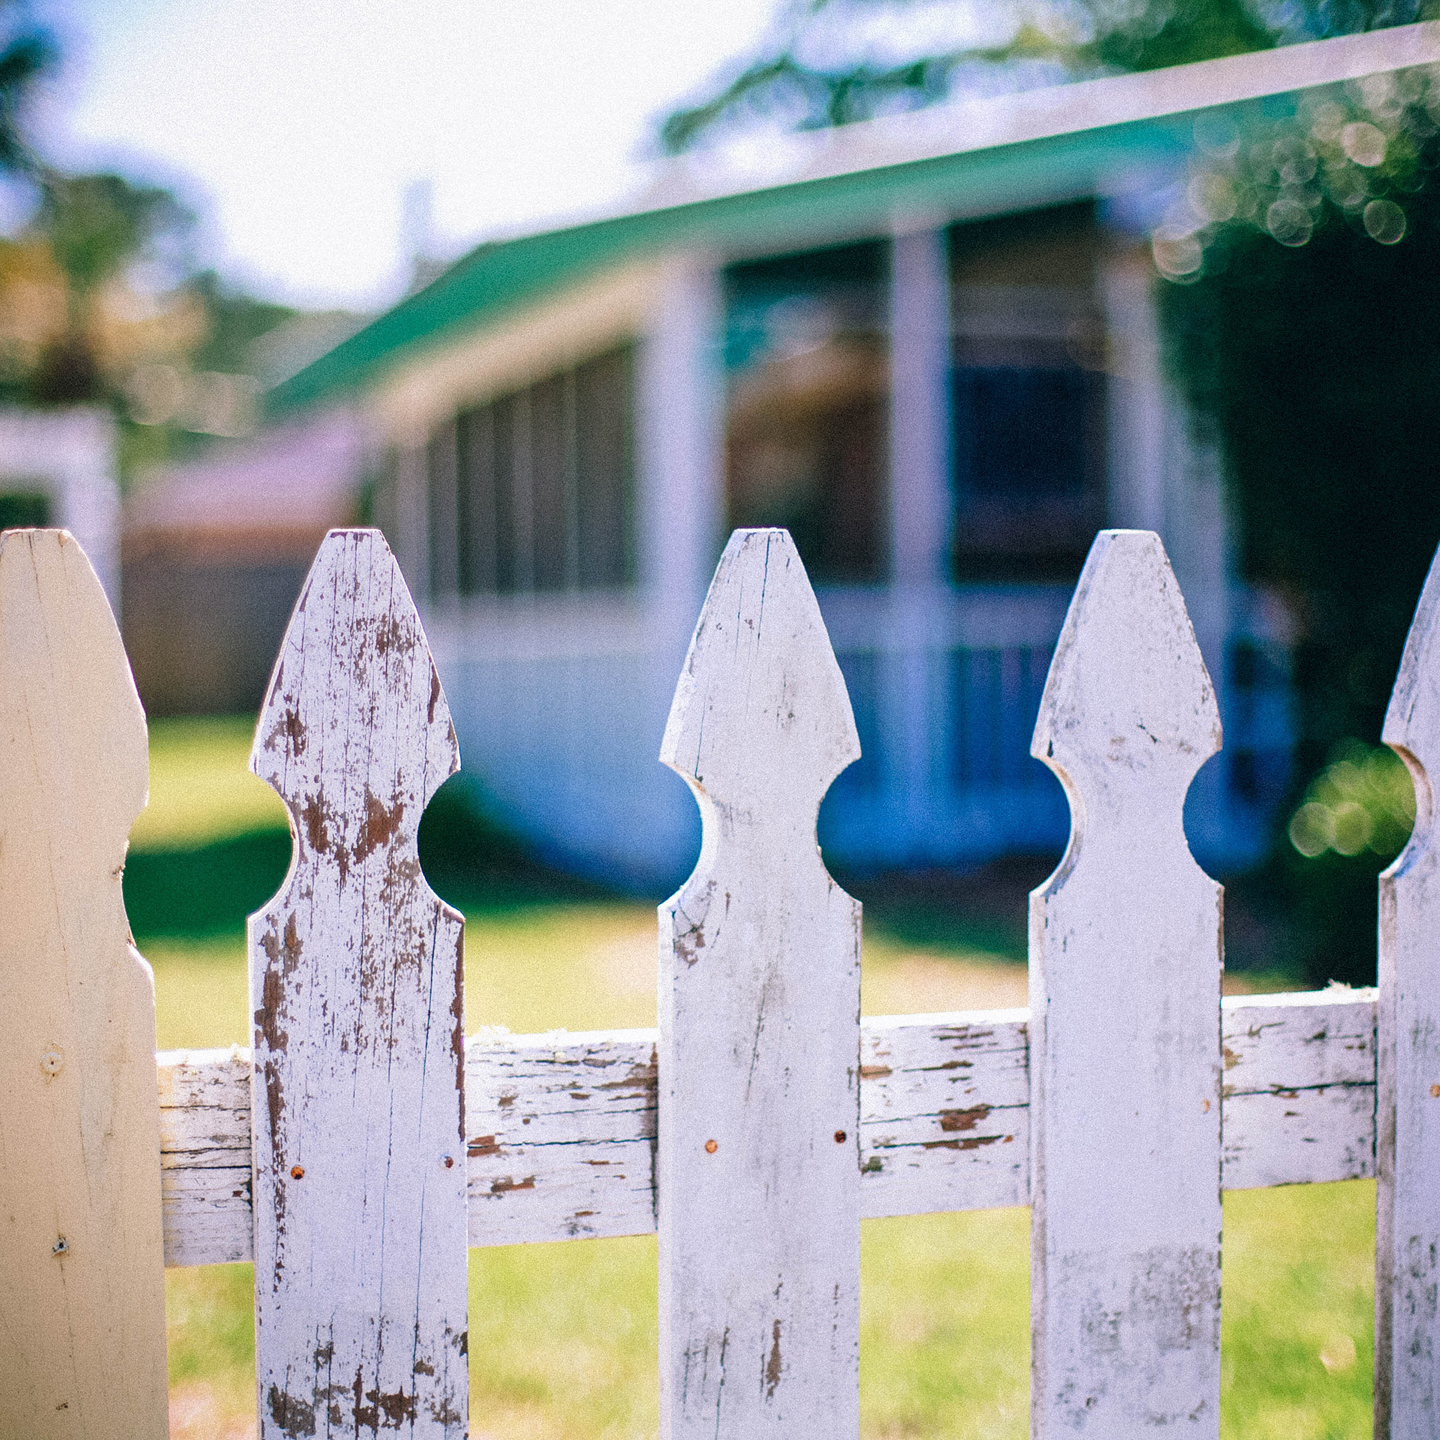 The Backyard Event Image - photograph of picket fence with yard in background